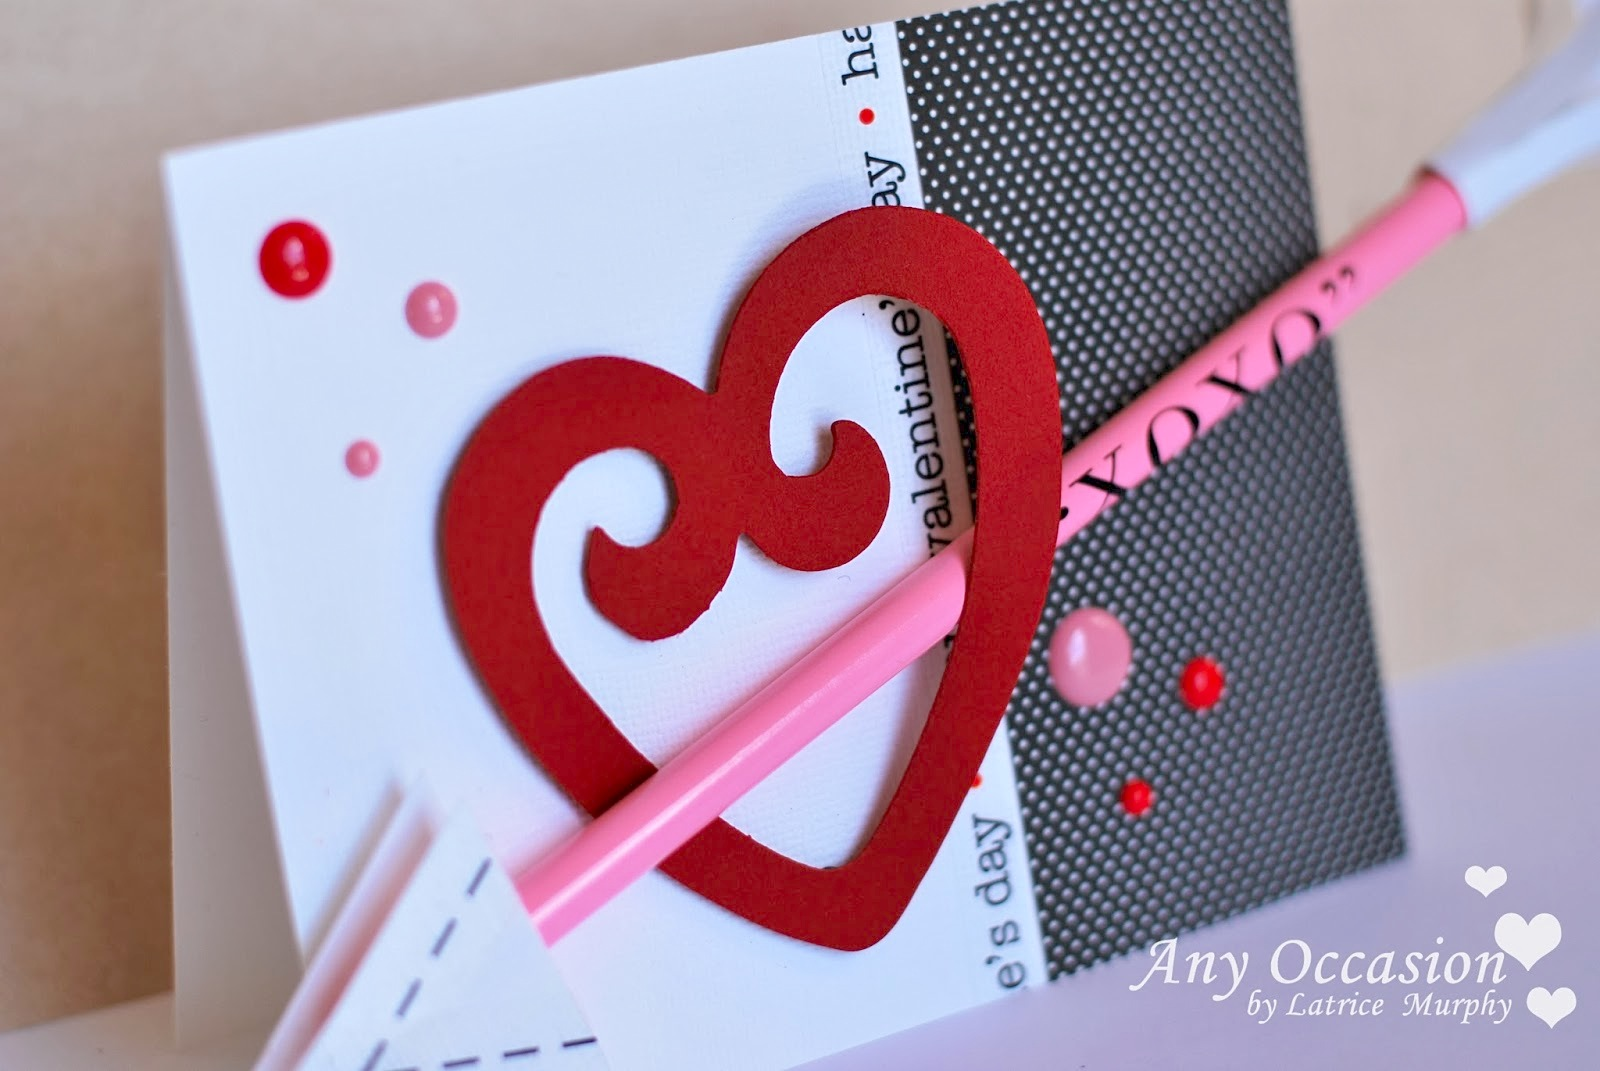 SRM Stickers Blog - Valentine Pencil Cards by Latrice - #valentines #stickers #pencils #stitches